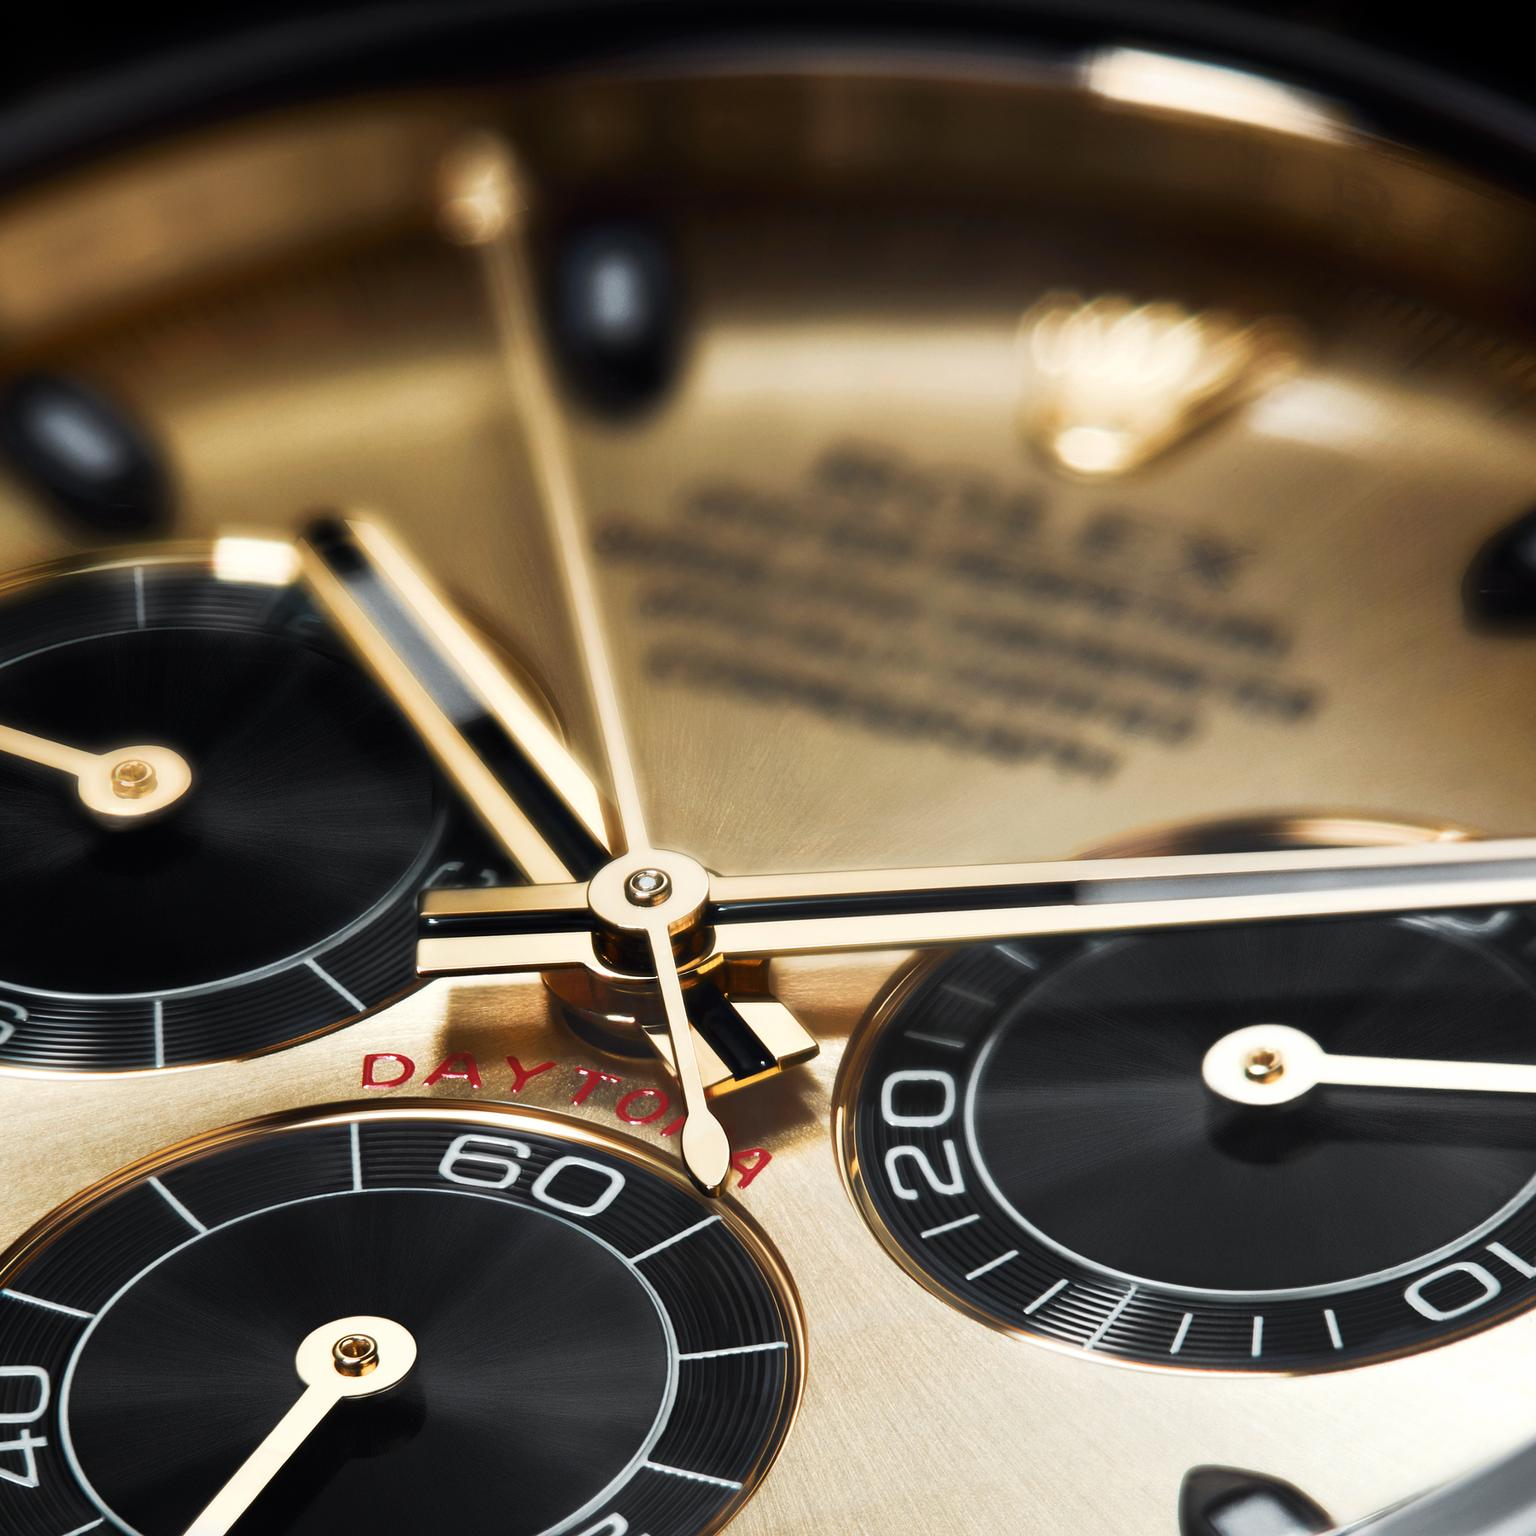 Why The Long Waiting List For The Rolex Daytona Watch The